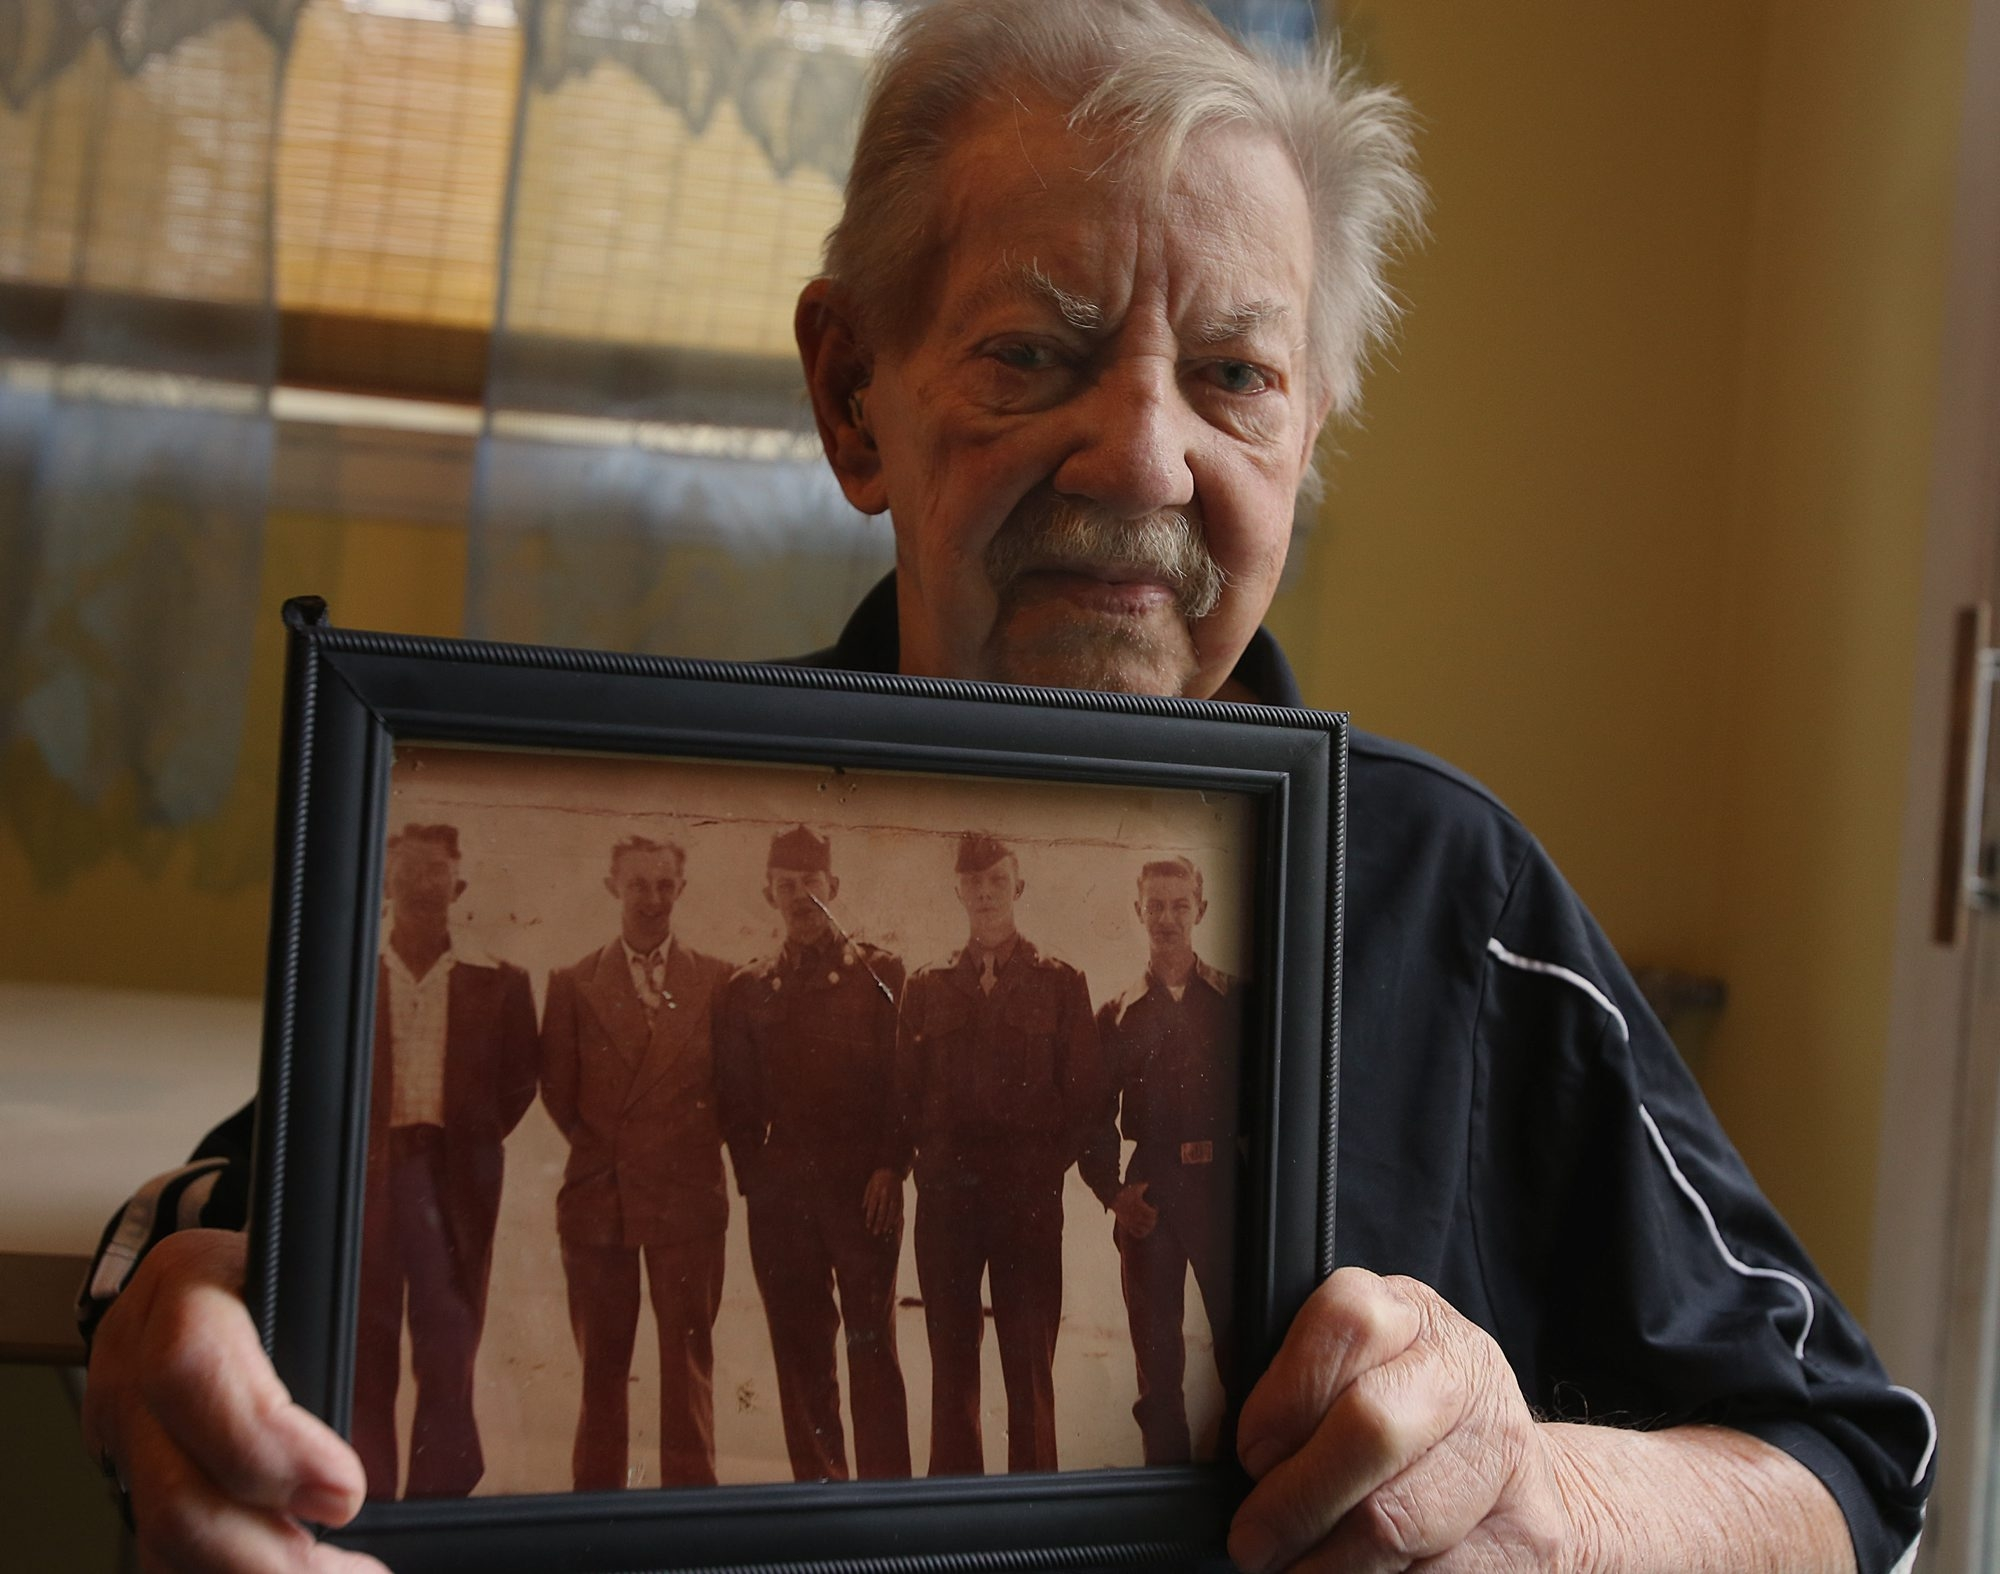 Robert E. Yale, of Buffalo, veteran of WWII occupation and Korean War, showing photo of him at center with, from left, father Leonard Sr. and brothers Leonard Jr., Carl and Keith.